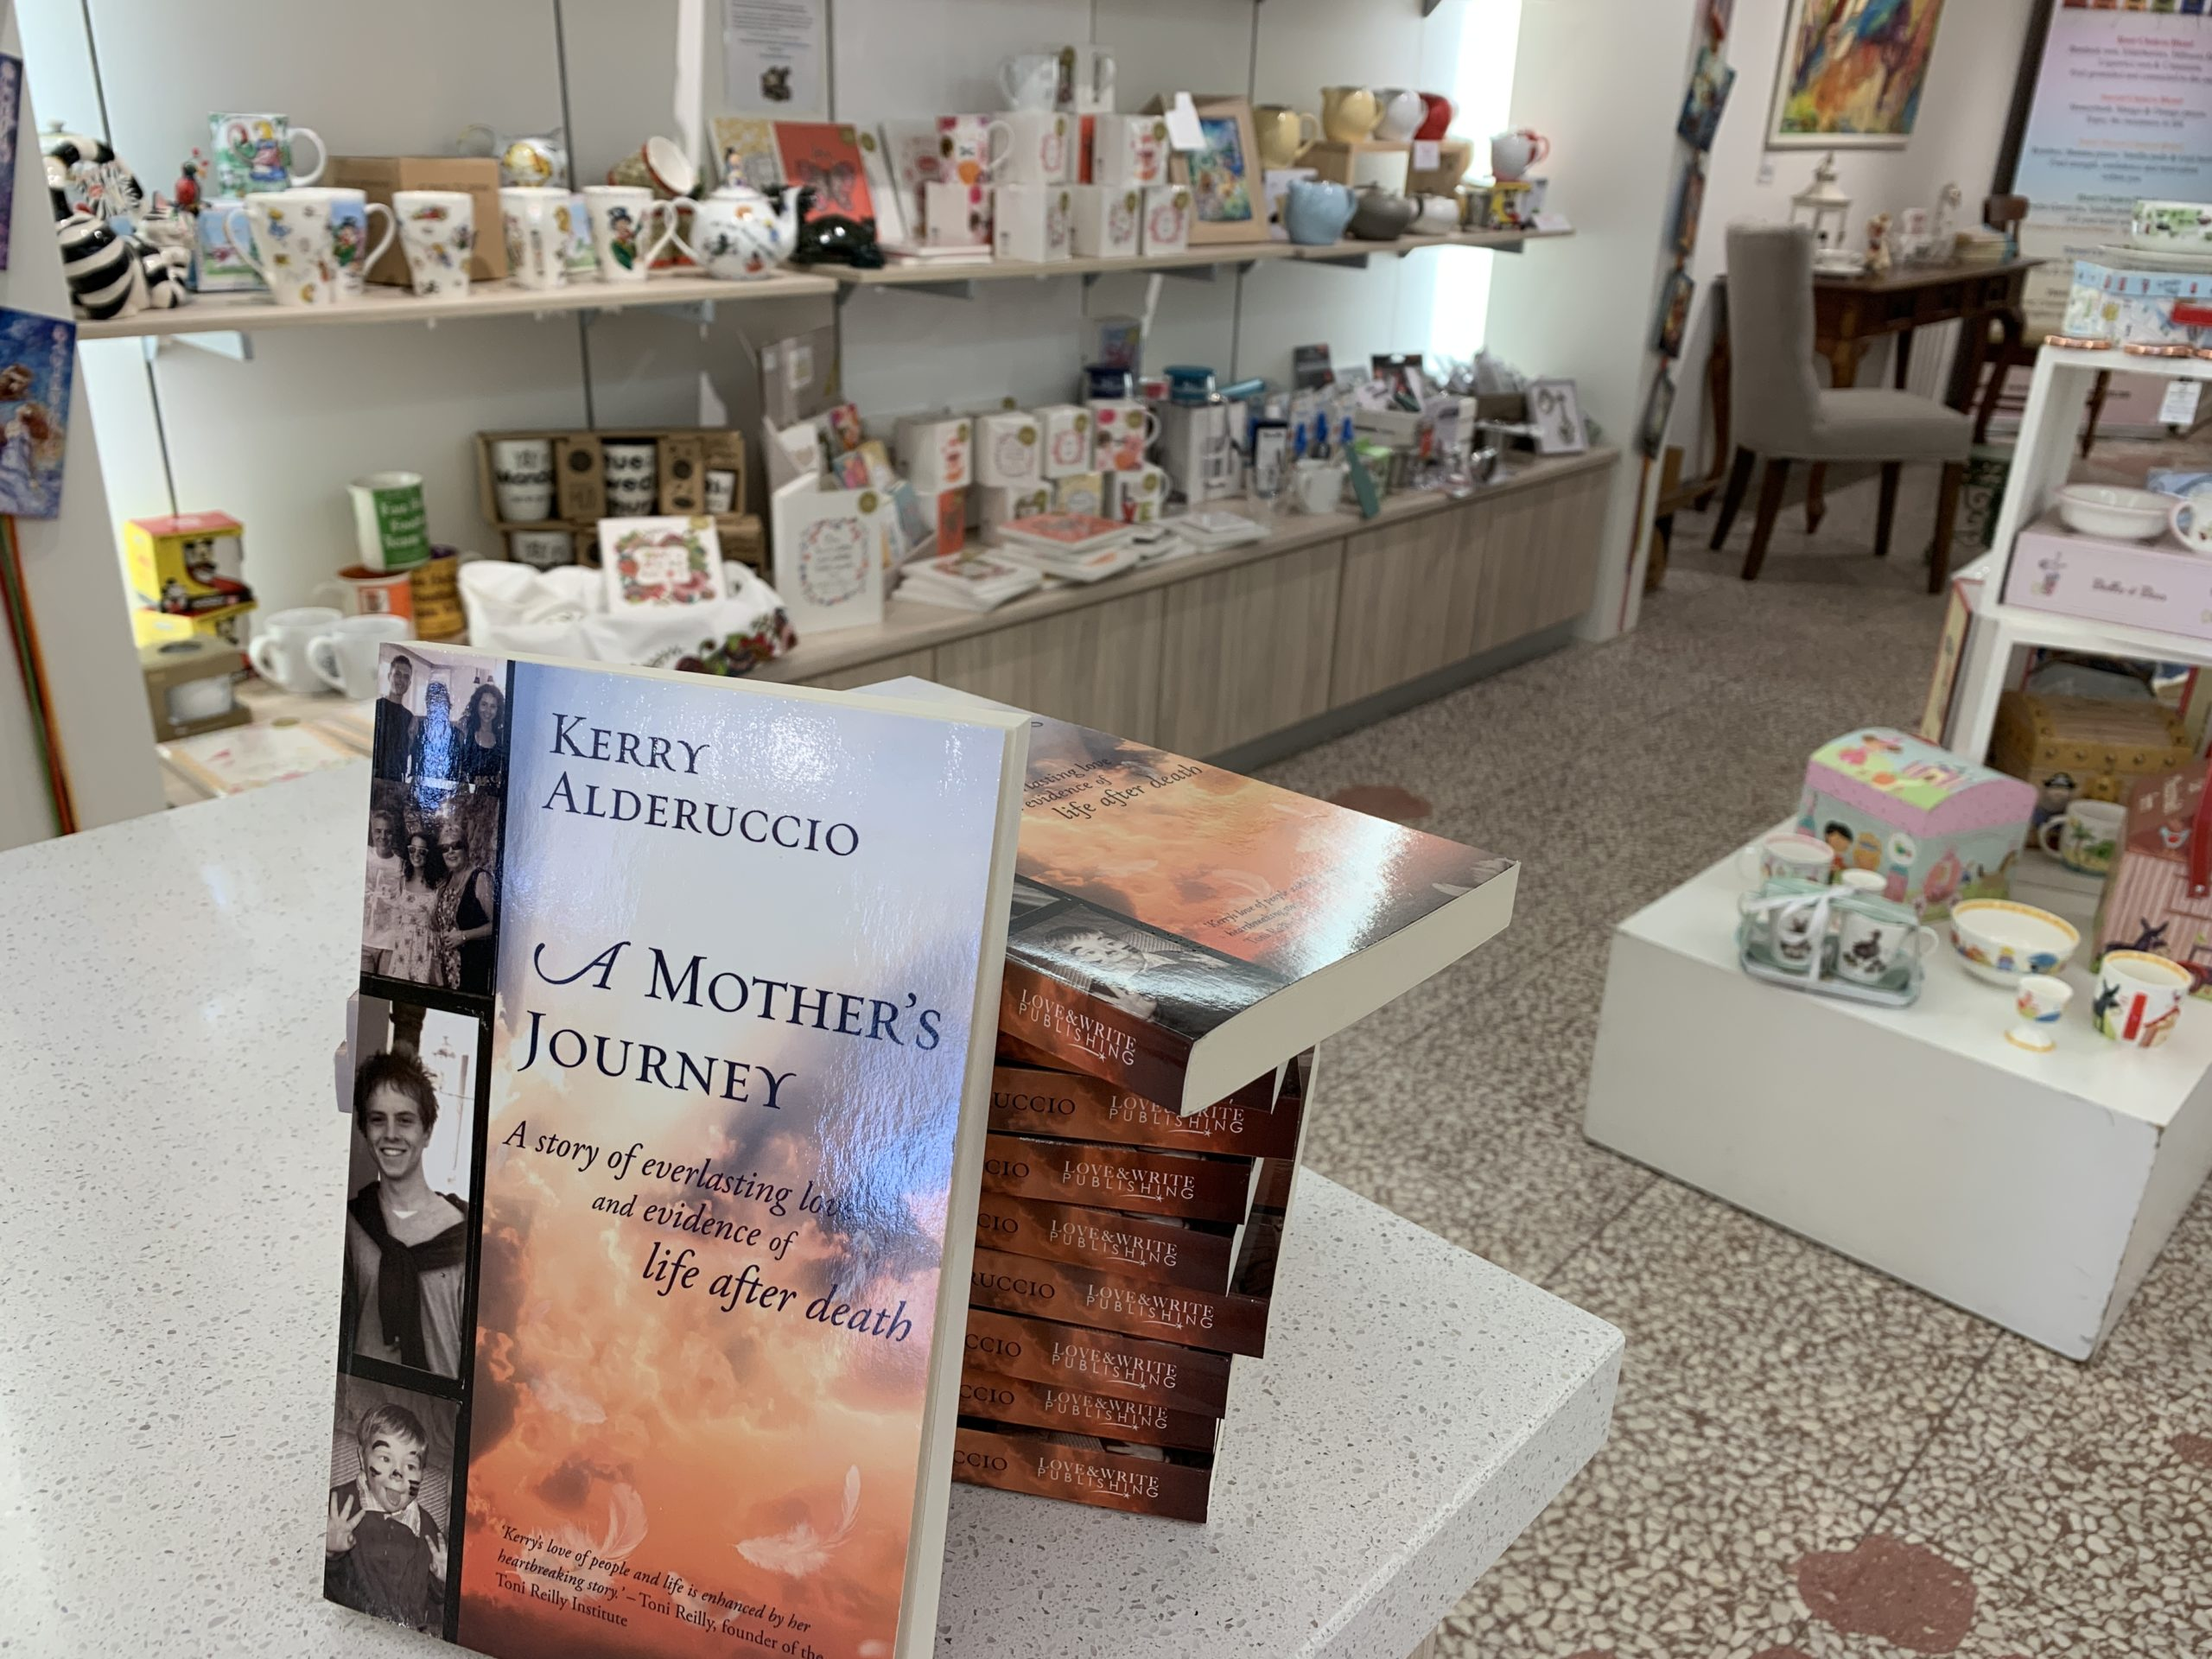 A Mother's Journey by Kerry Aldericcio stacked up at Tea Empress